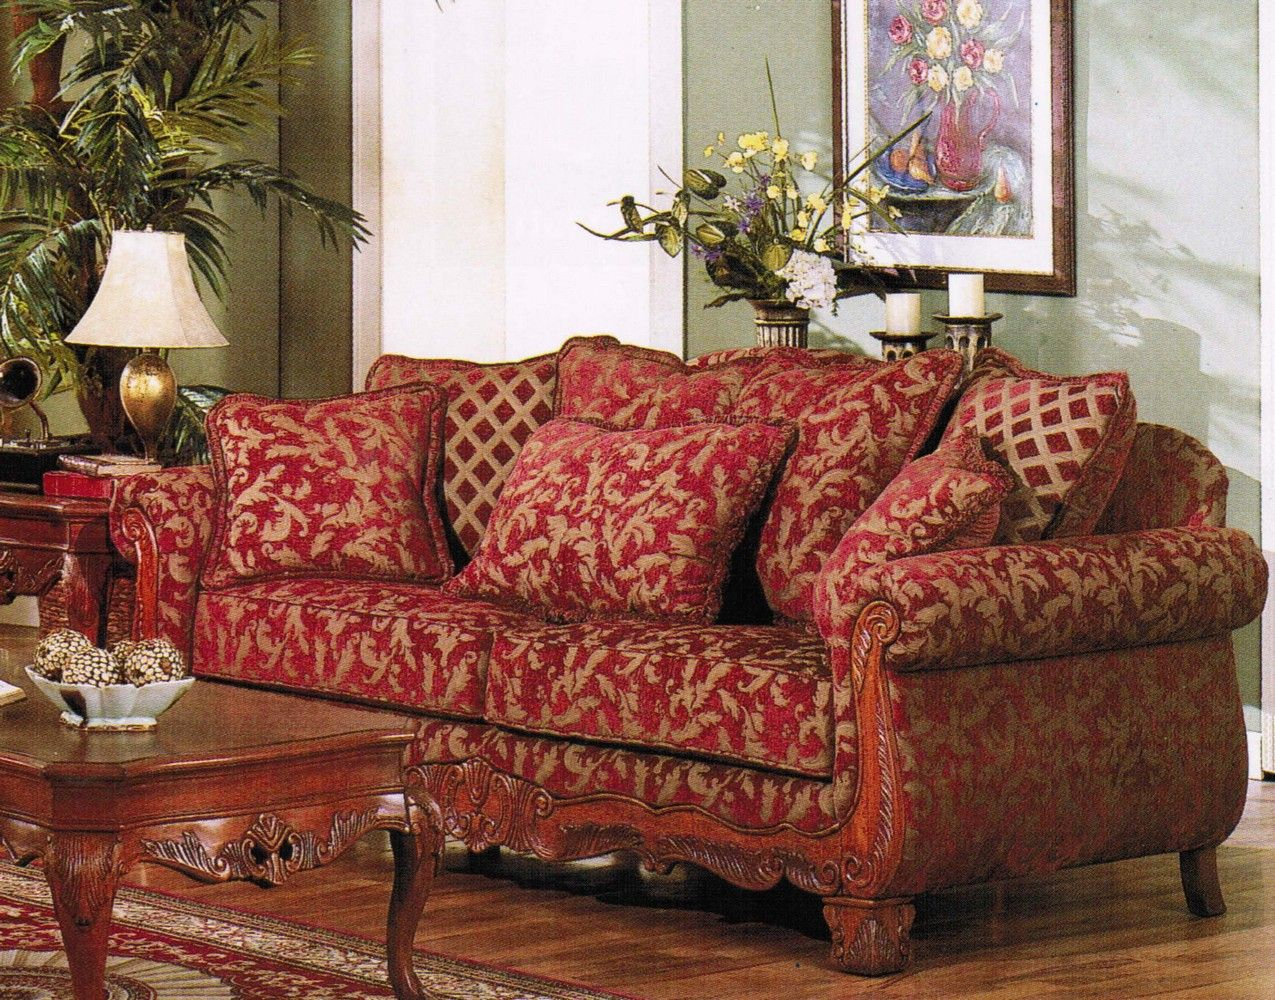 Sofa Couch Burgundy Gold Floral Chenille Fabric Red Sofa